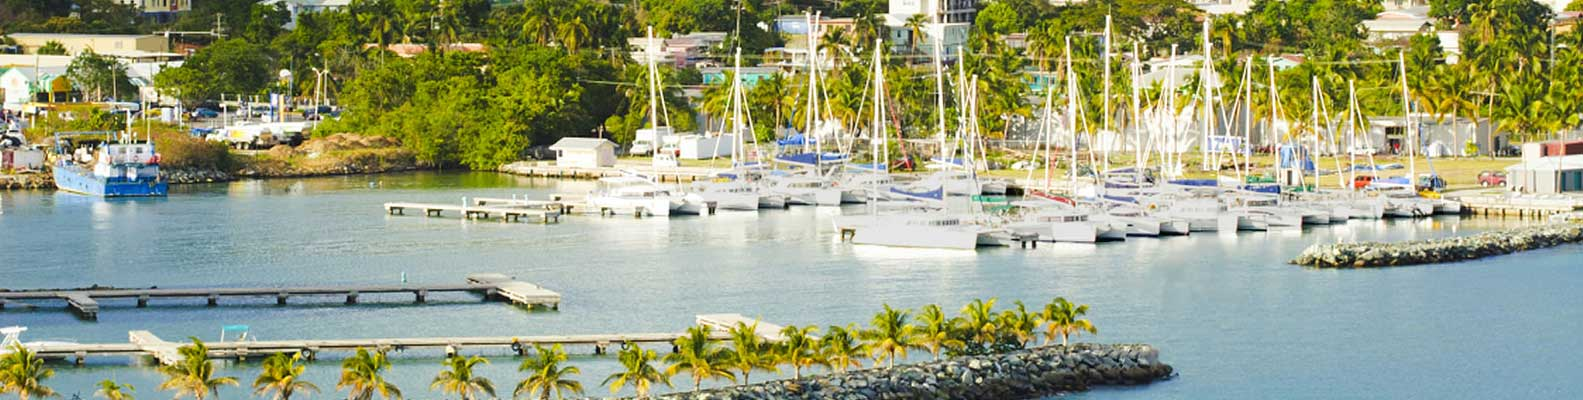 Marina, the starting point of sailing holidays in the Caribbean